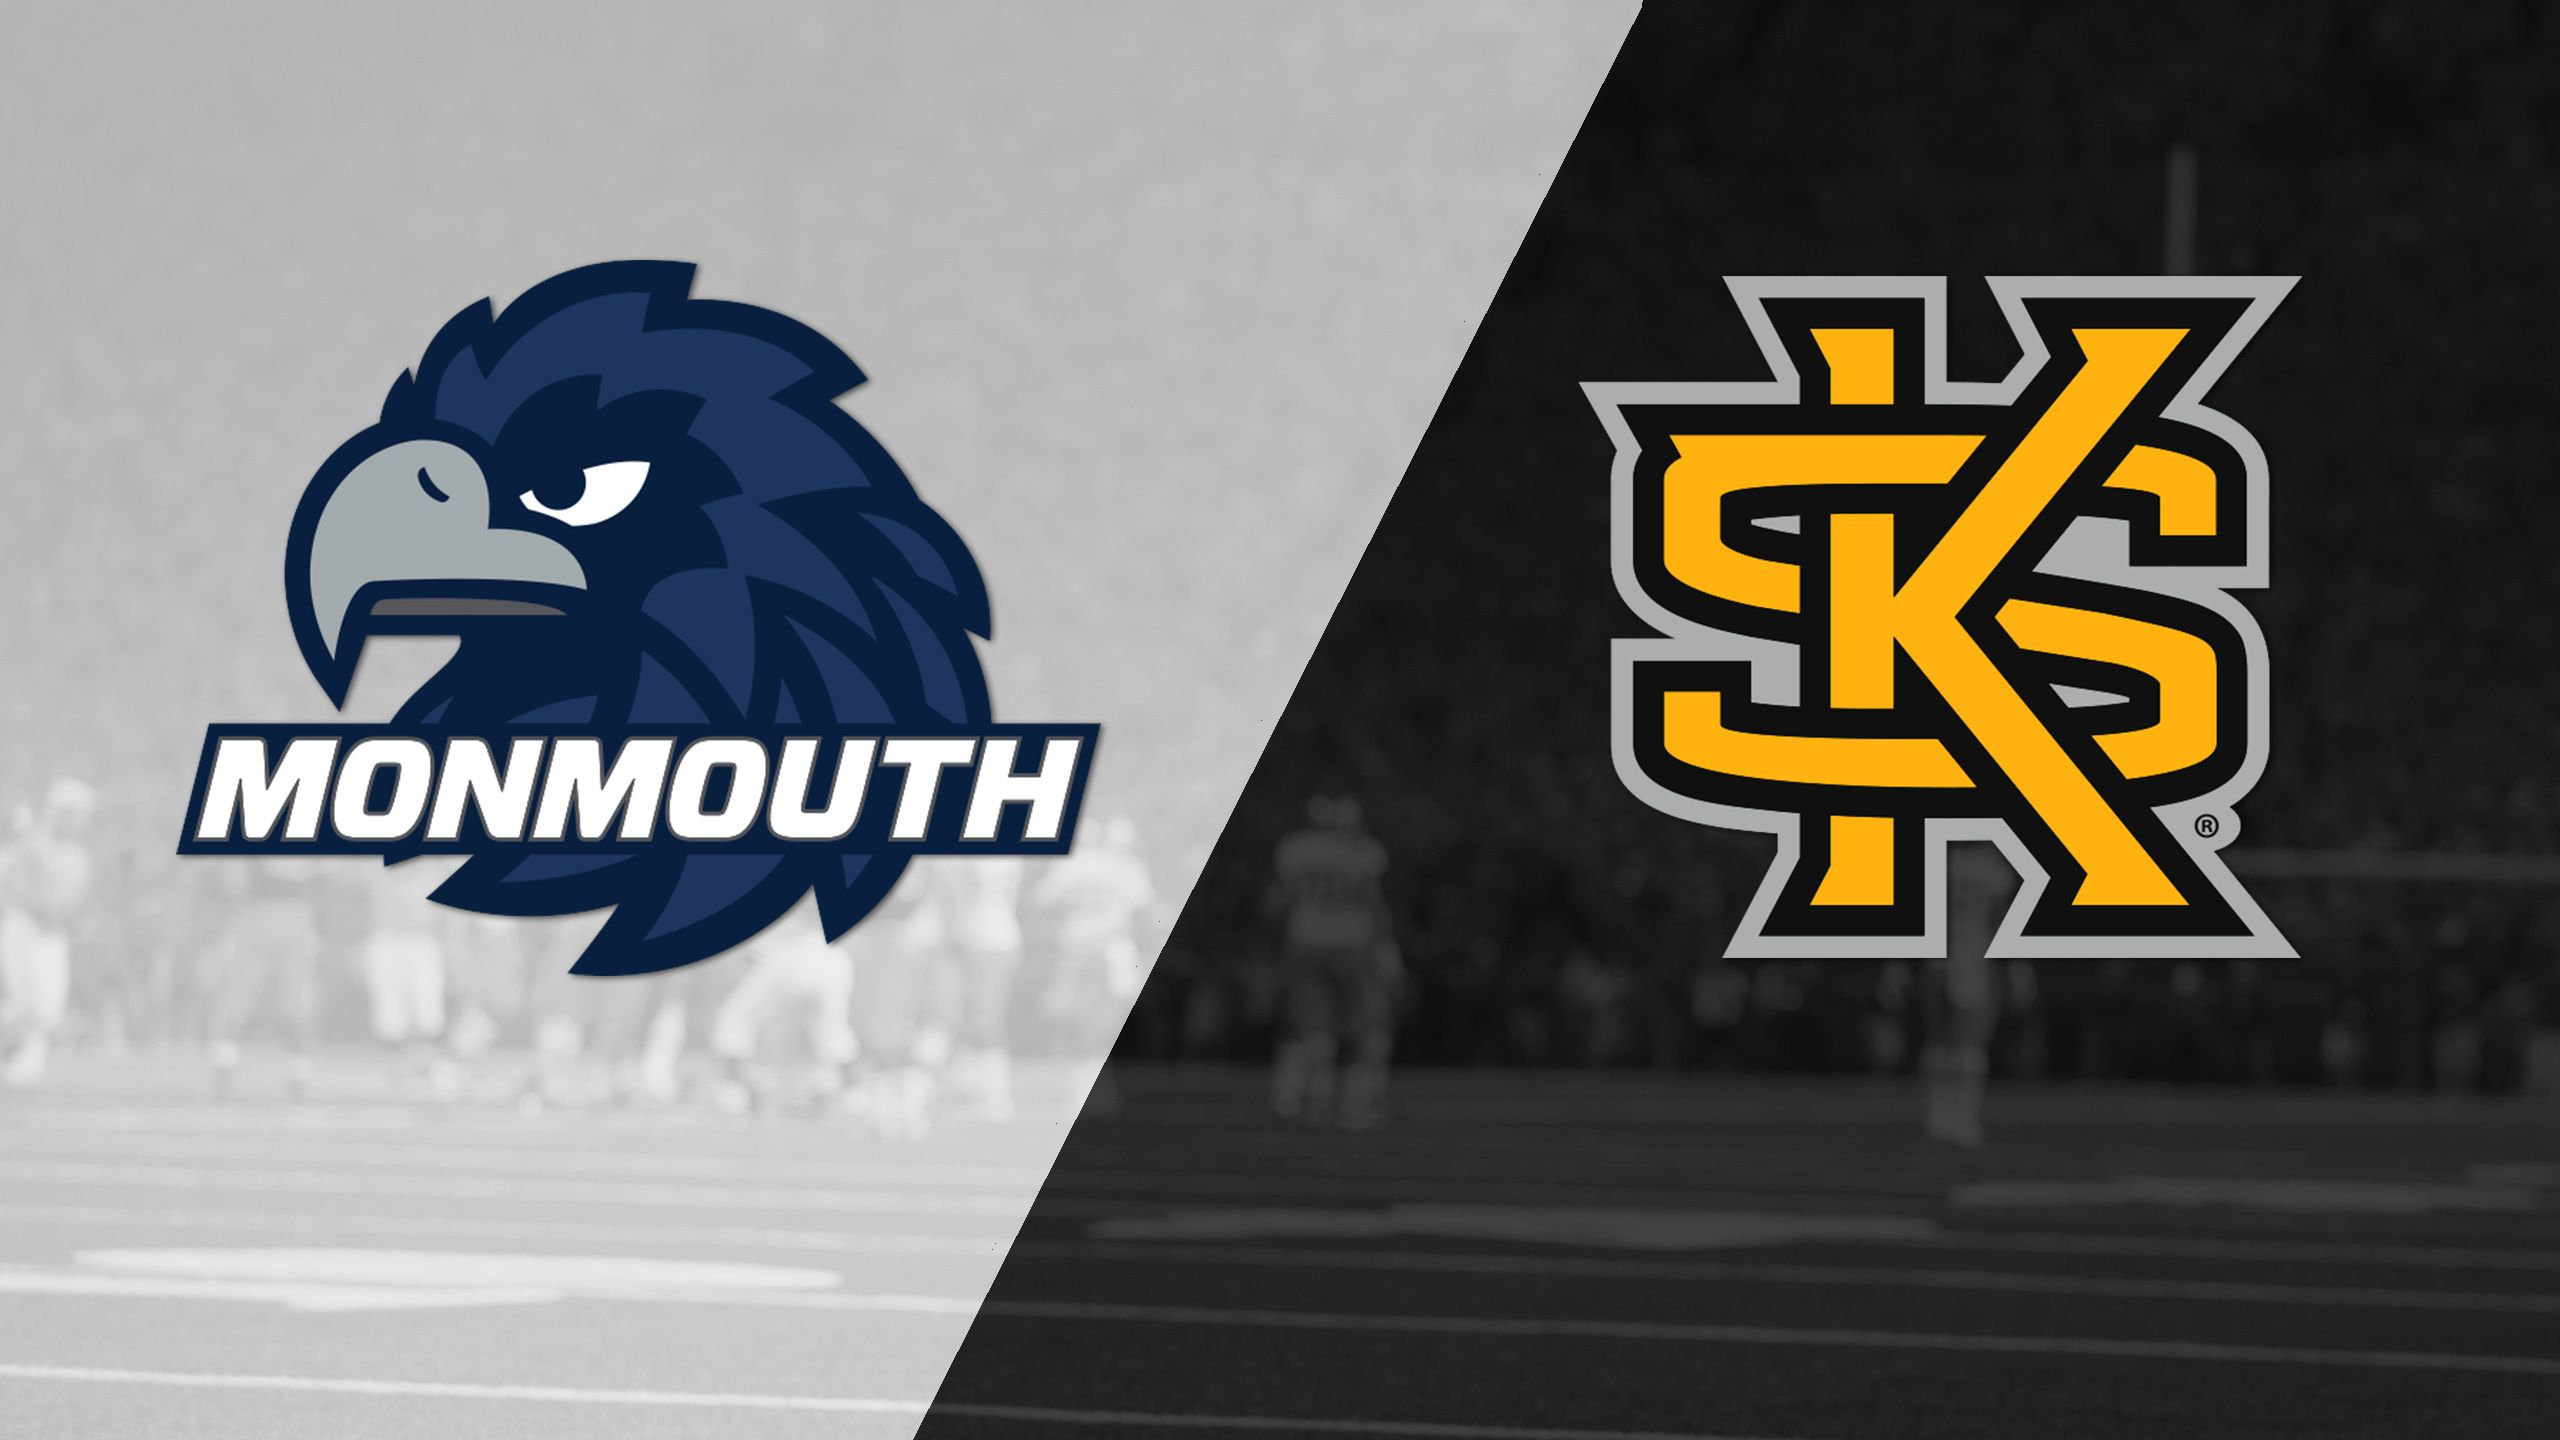 Monmouth vs. Kennesaw State (Football)